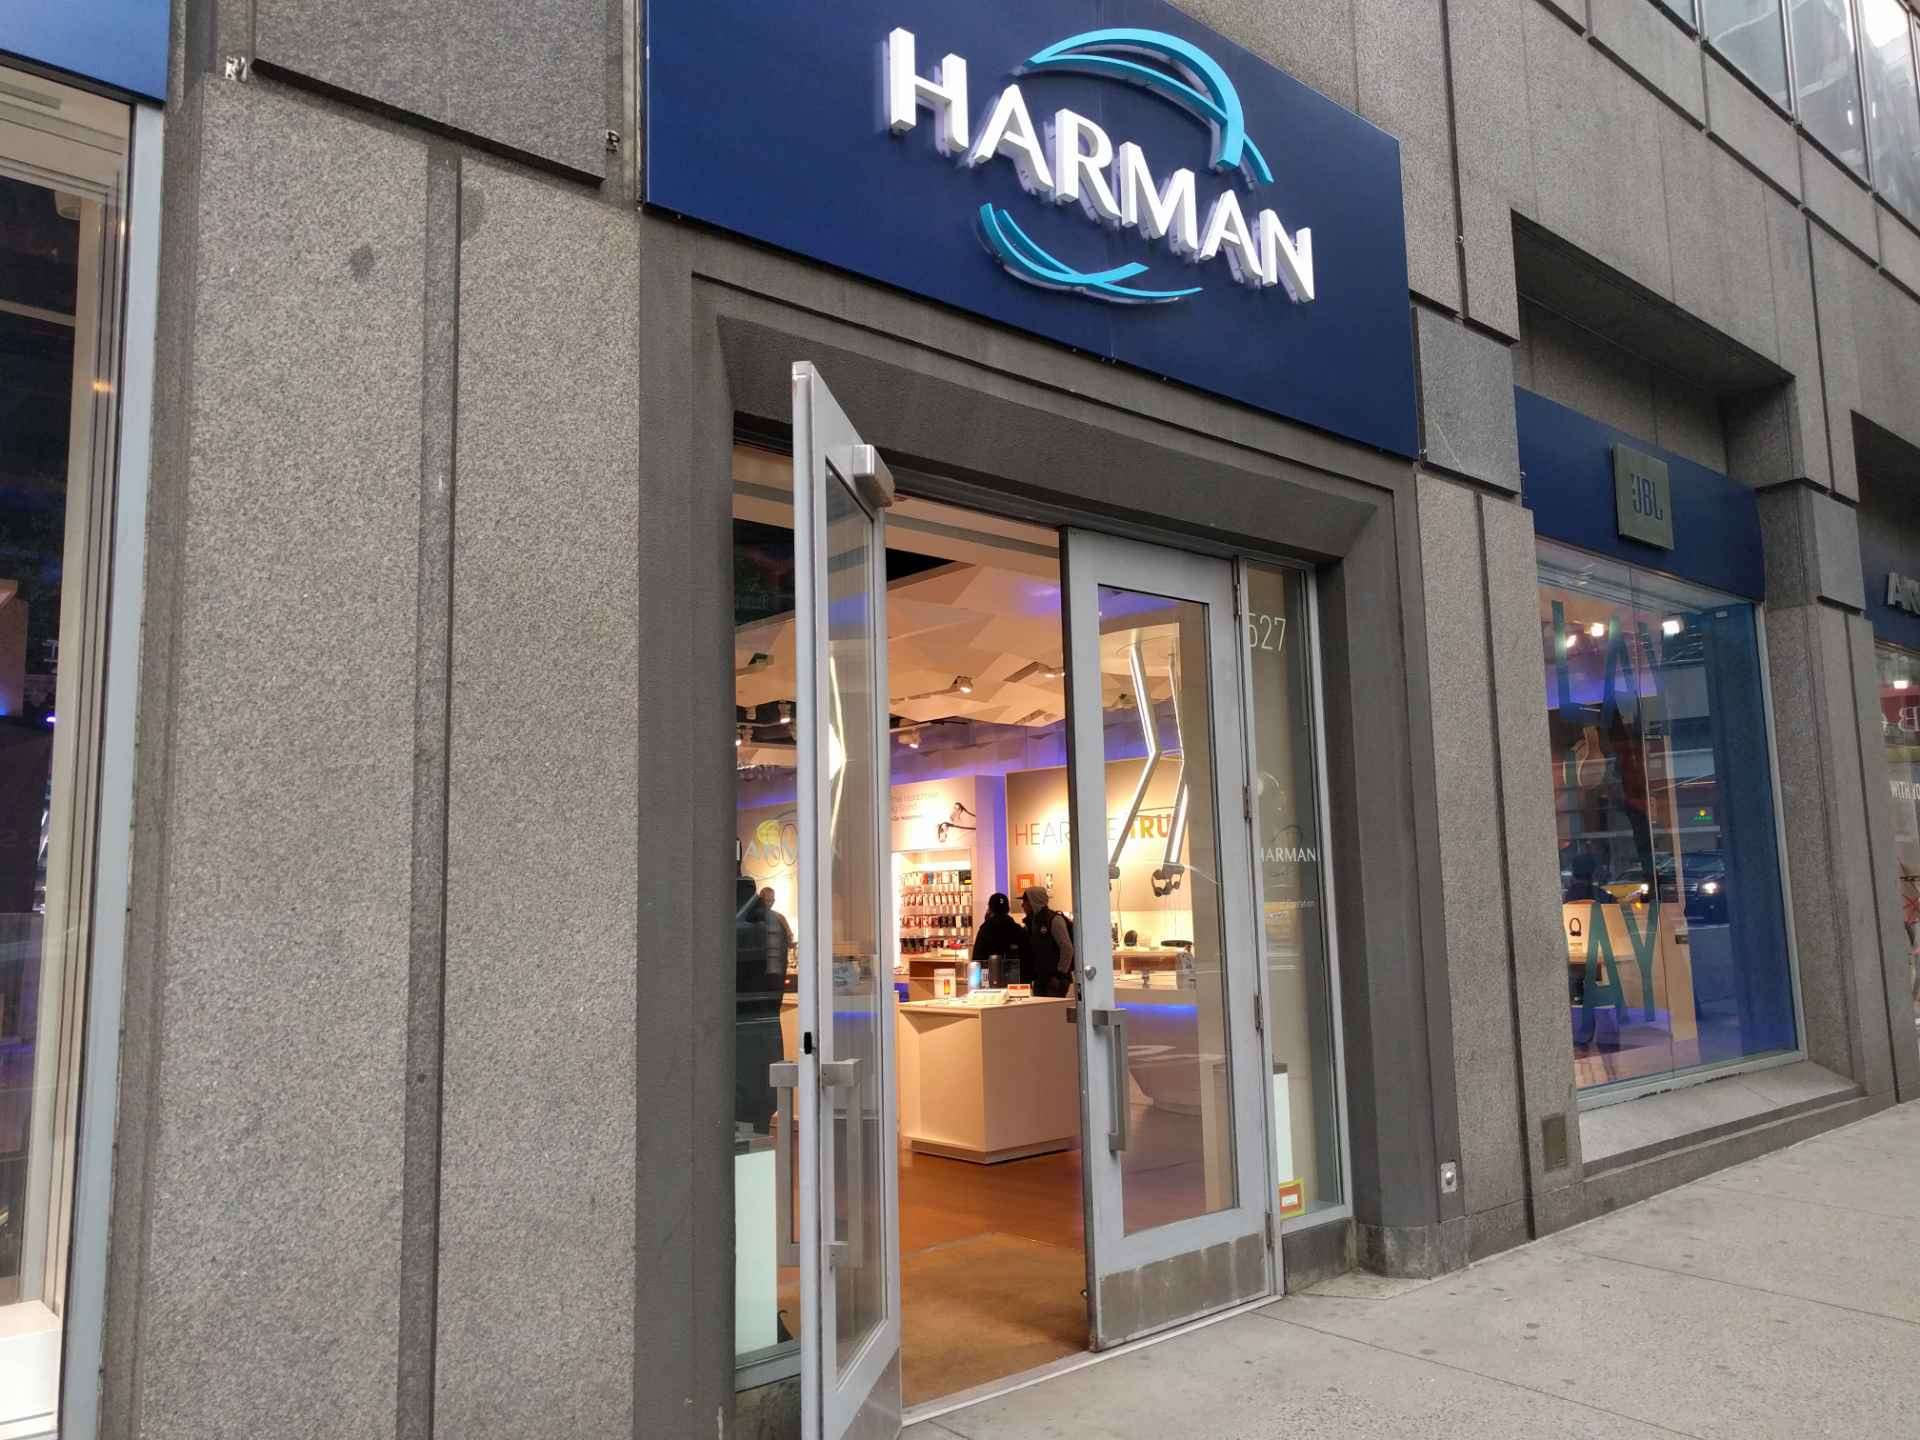 Entrance to a Harman retail store in New York City.